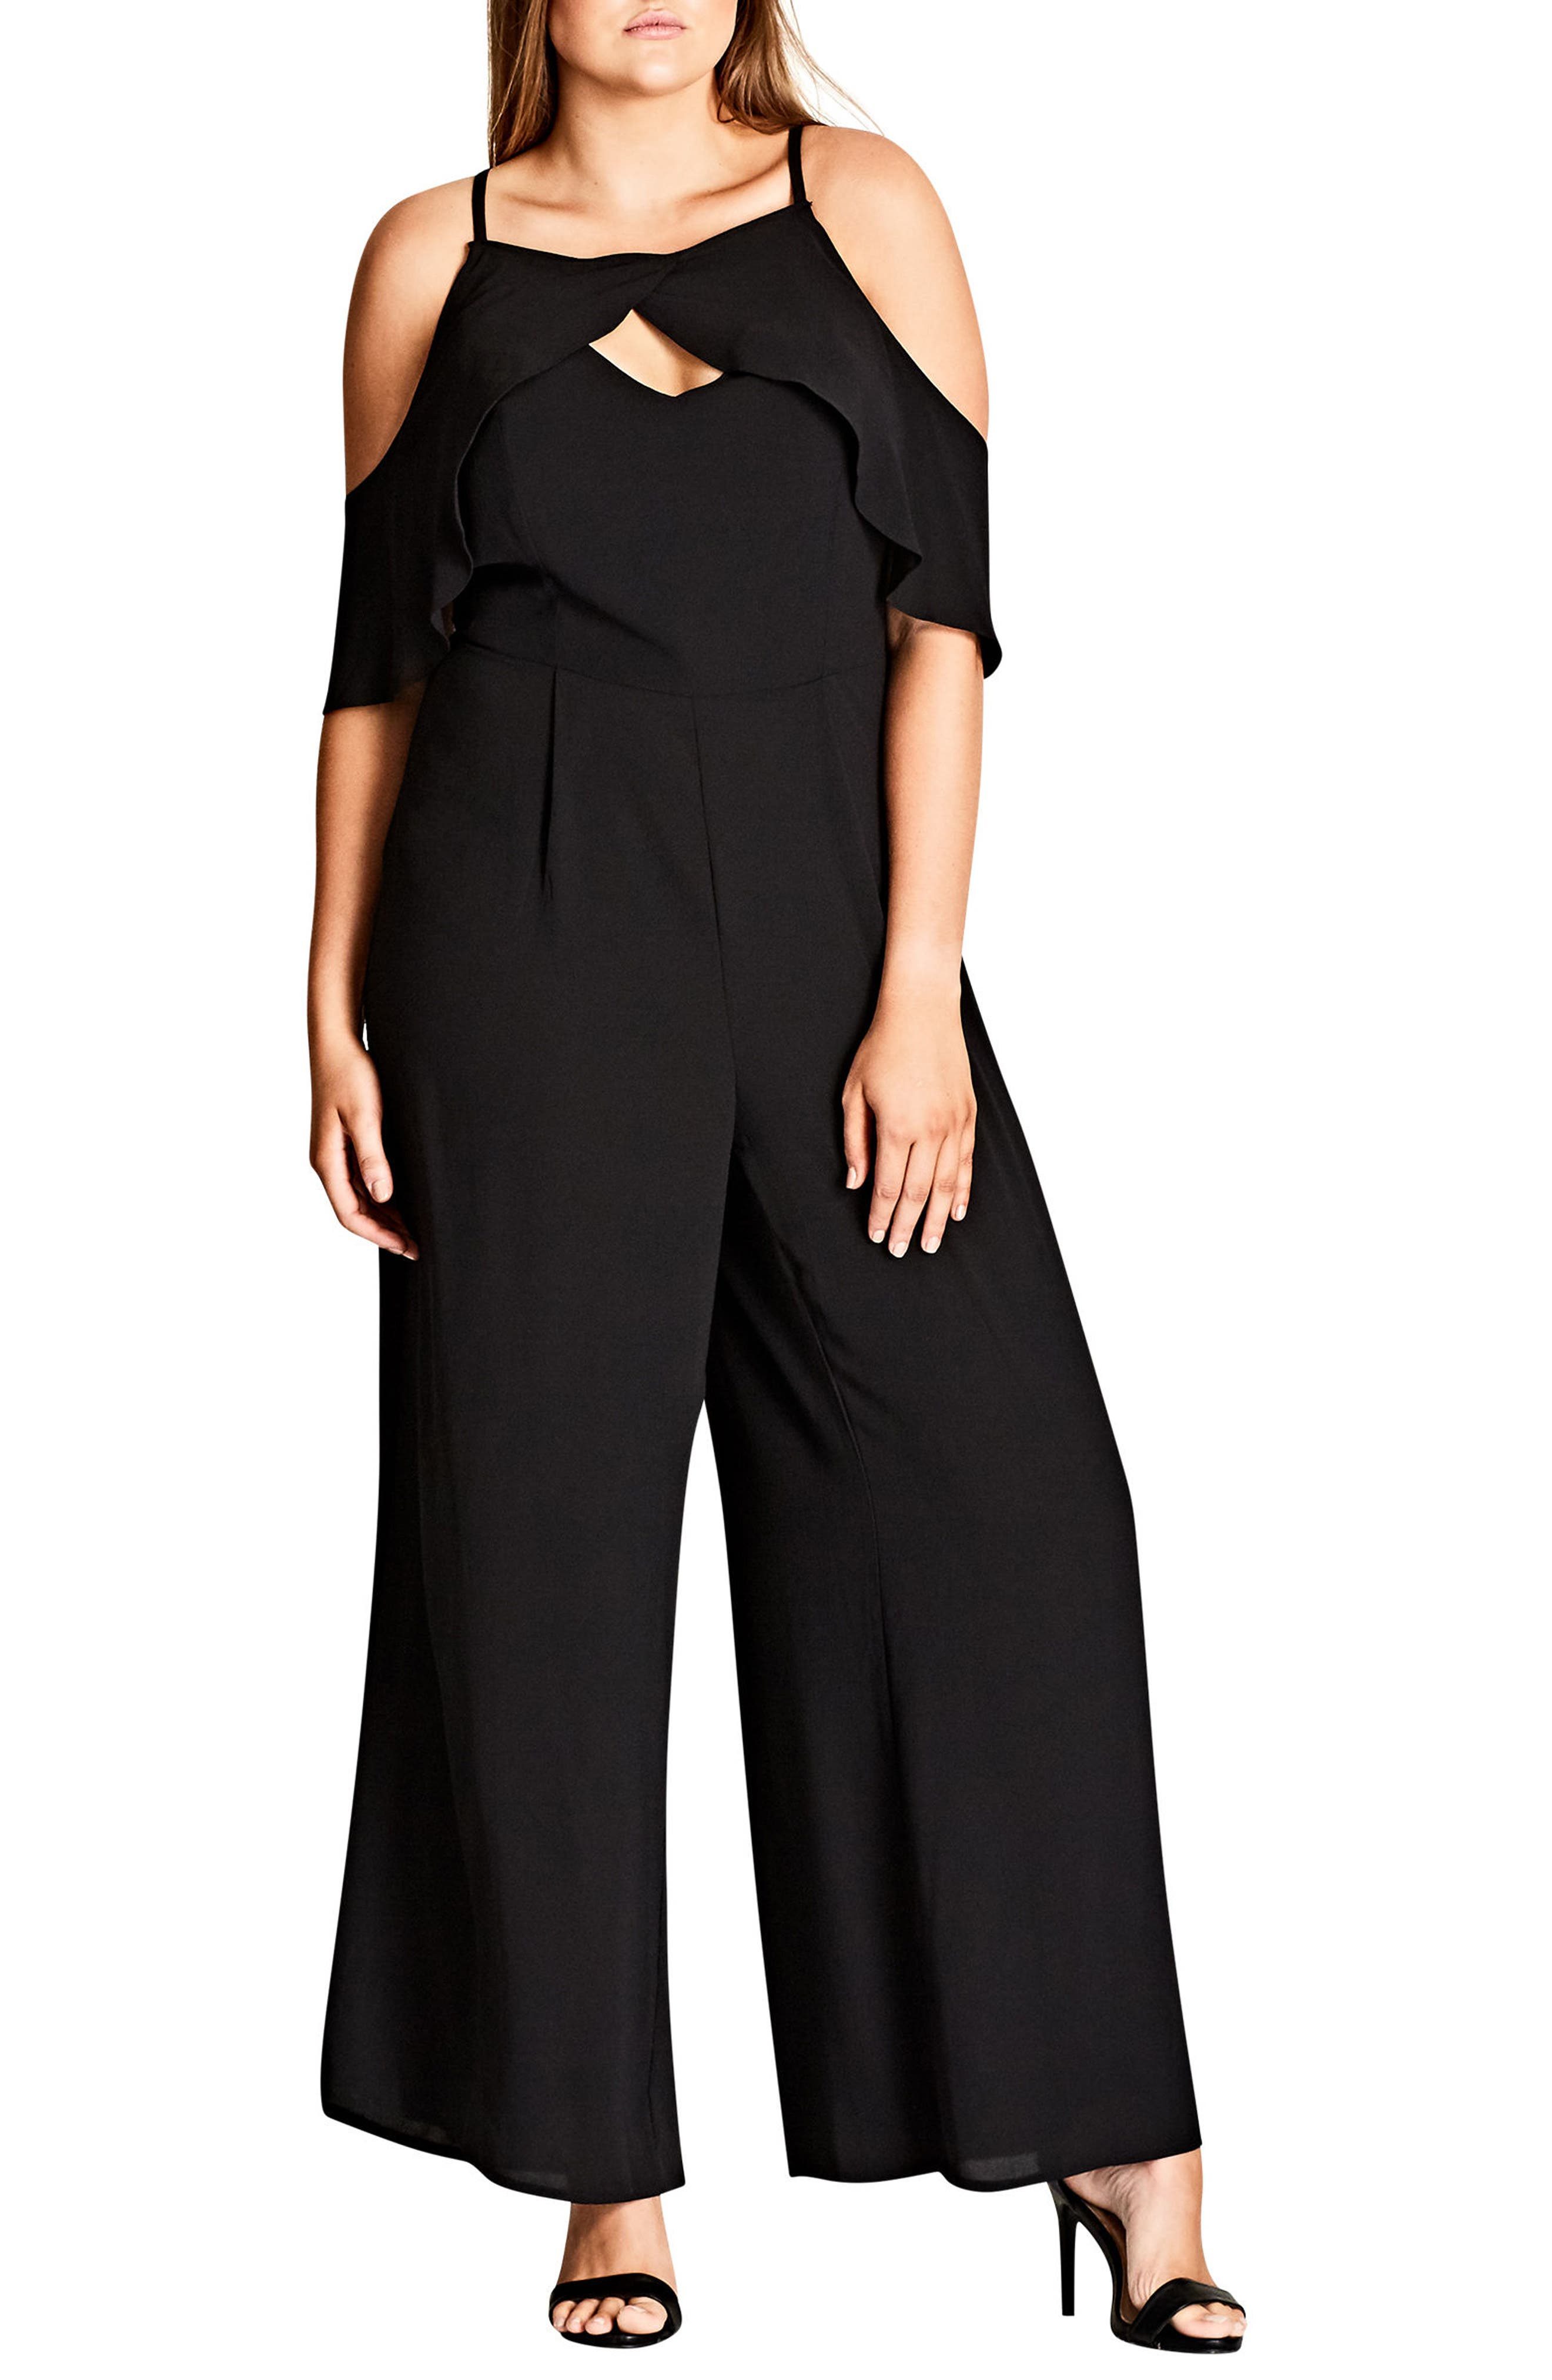 Serenity Cold Shoulder Jumpsuit,                             Main thumbnail 1, color,                             Black